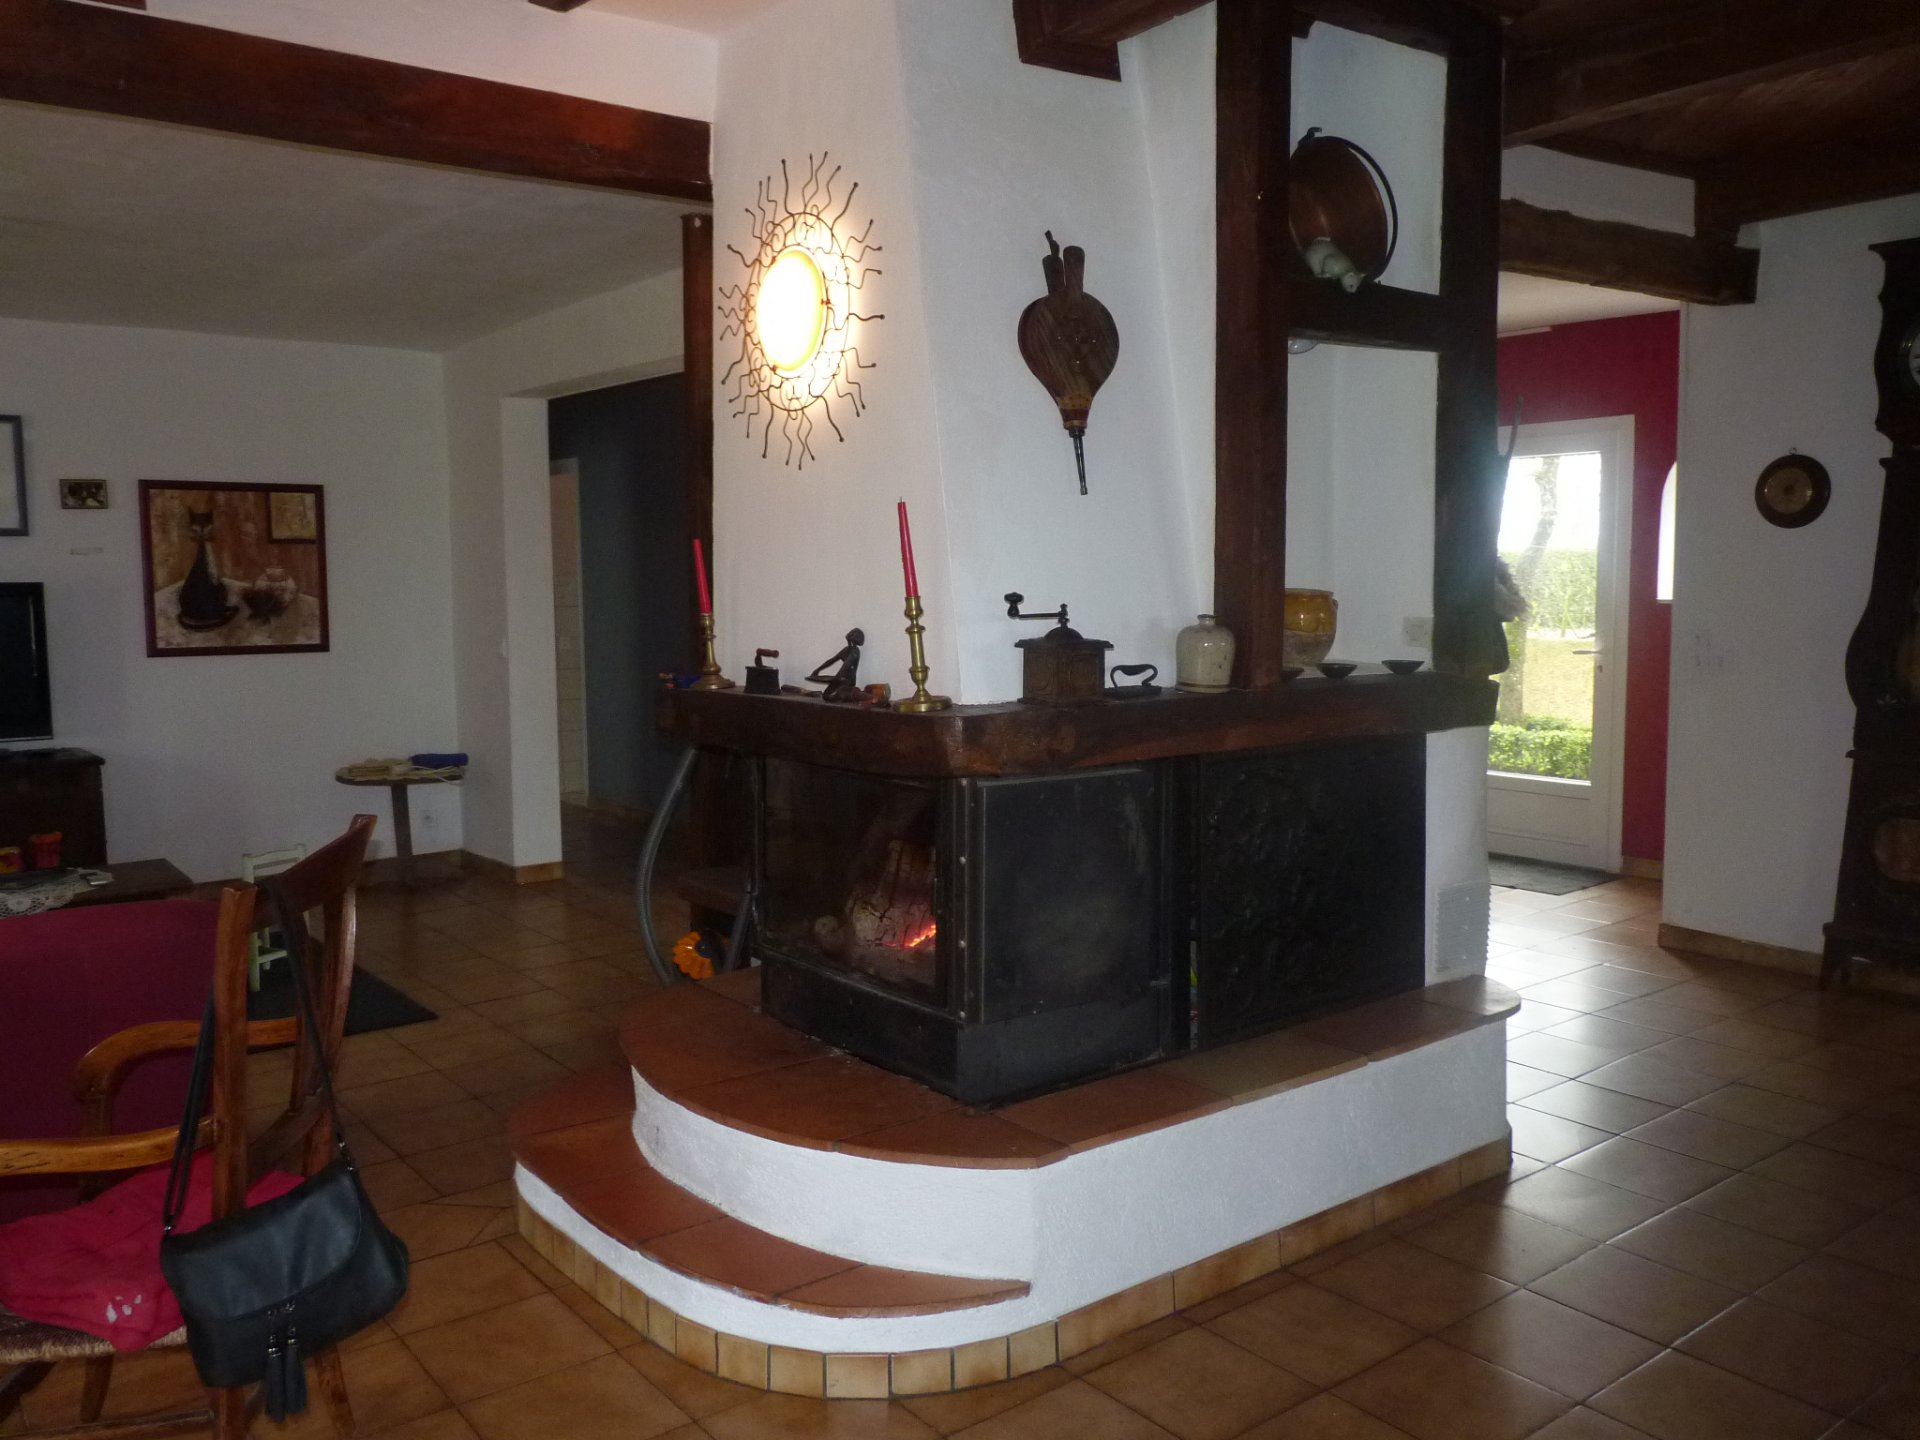 Area close to Fousseret, family house on more than 5 hectares